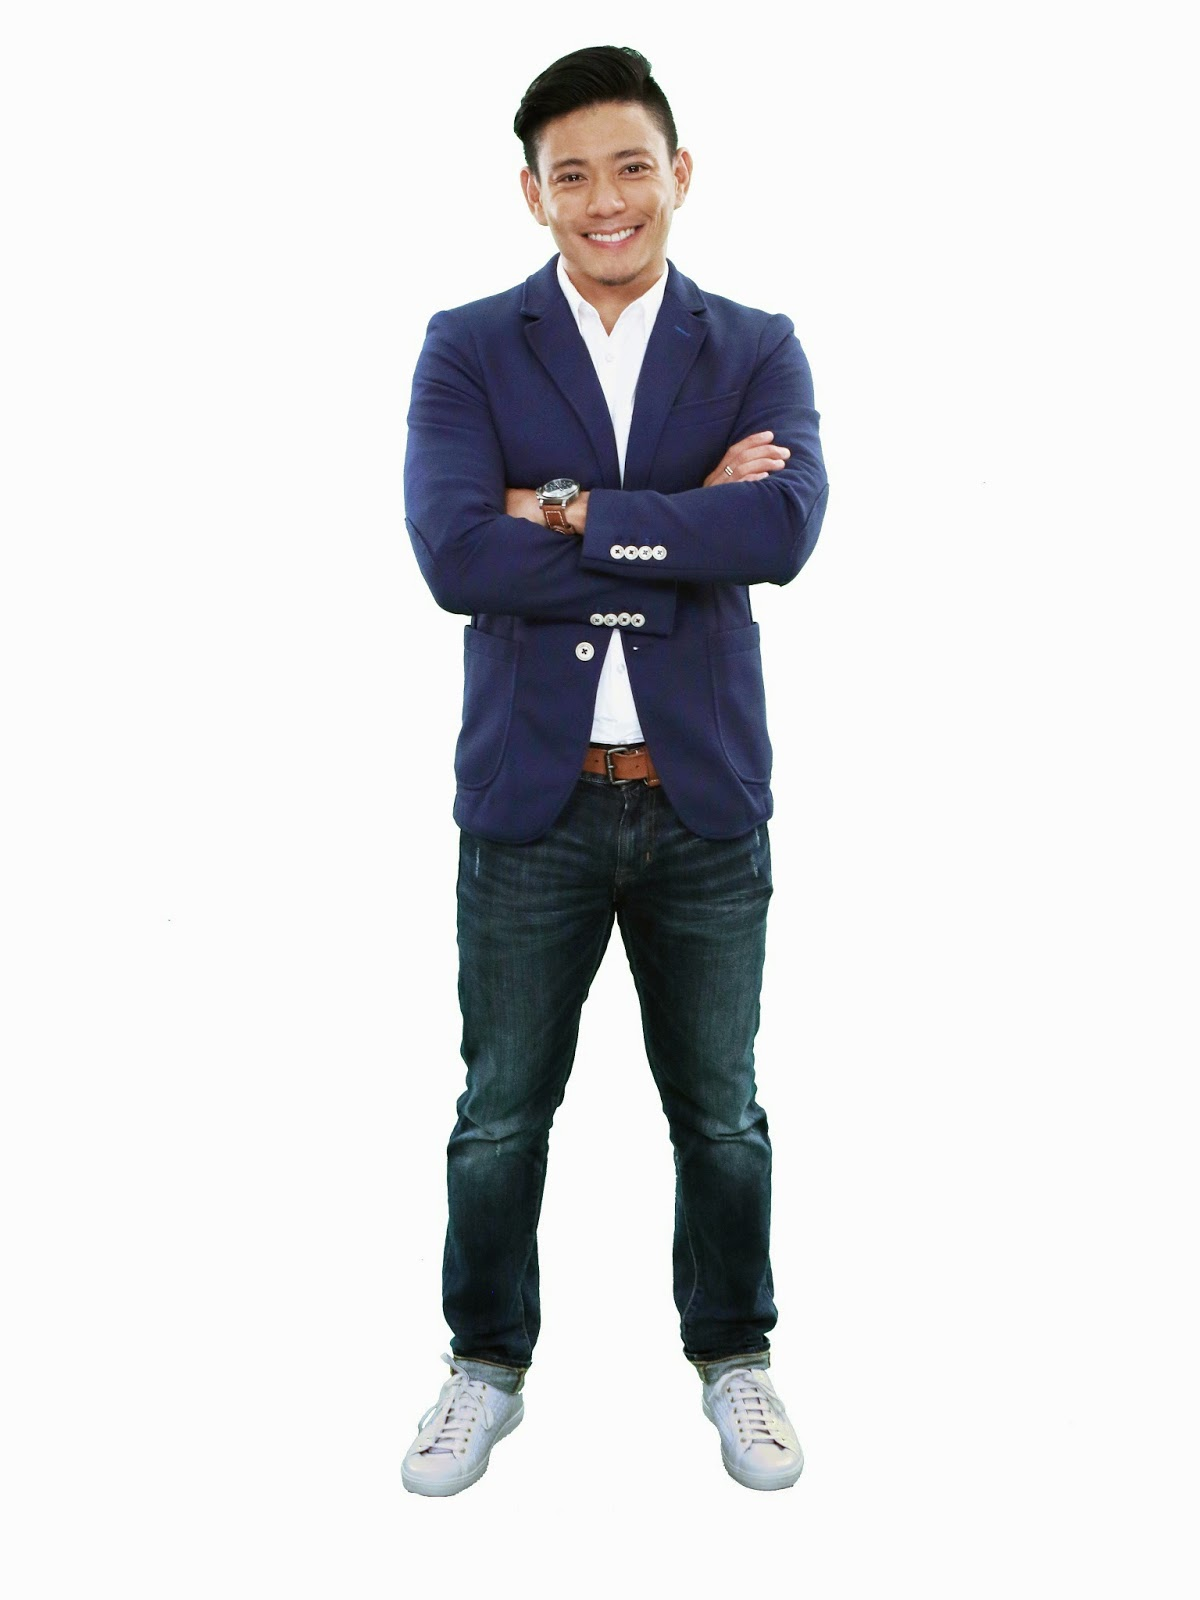 DREW ARELLANO SET TO HOST NEW SEASON OF BONAKID PRE-SCHOOL'S READY SET LABAN SEASON 2